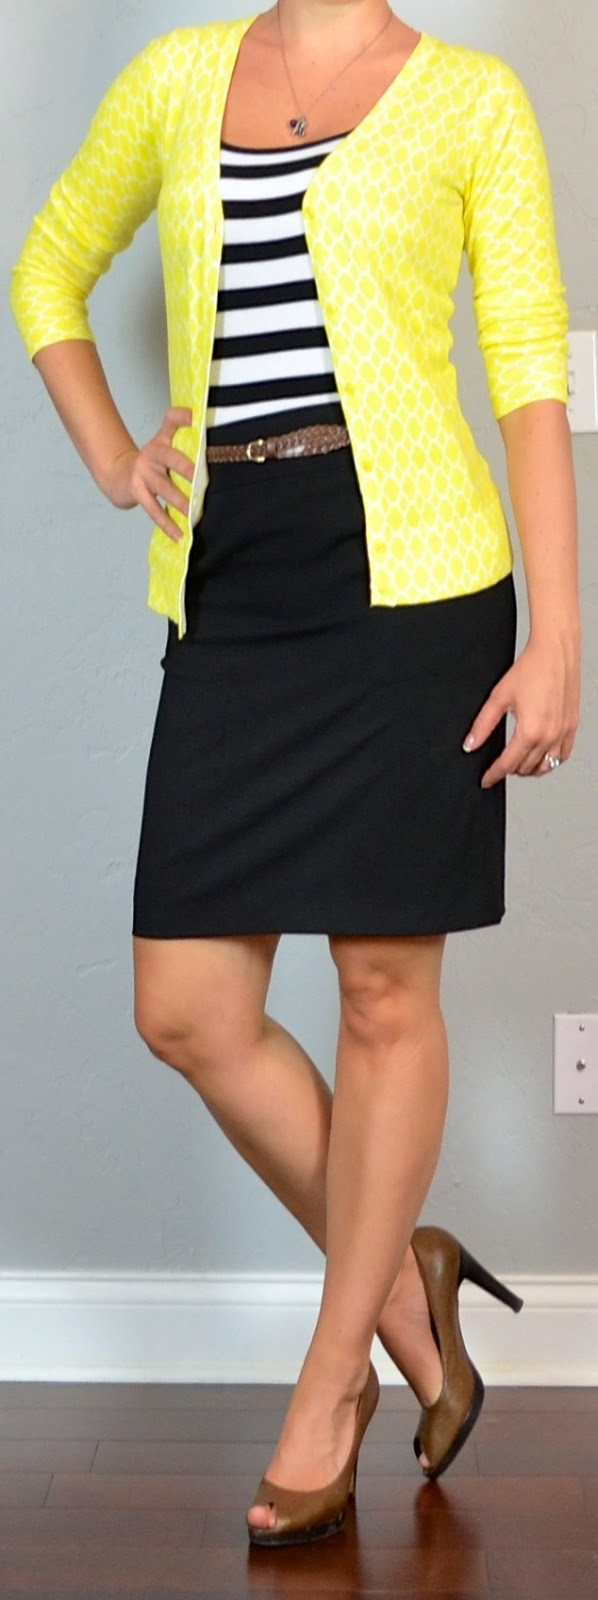 Outfit post striped tank yellow cardigan black pencil ...